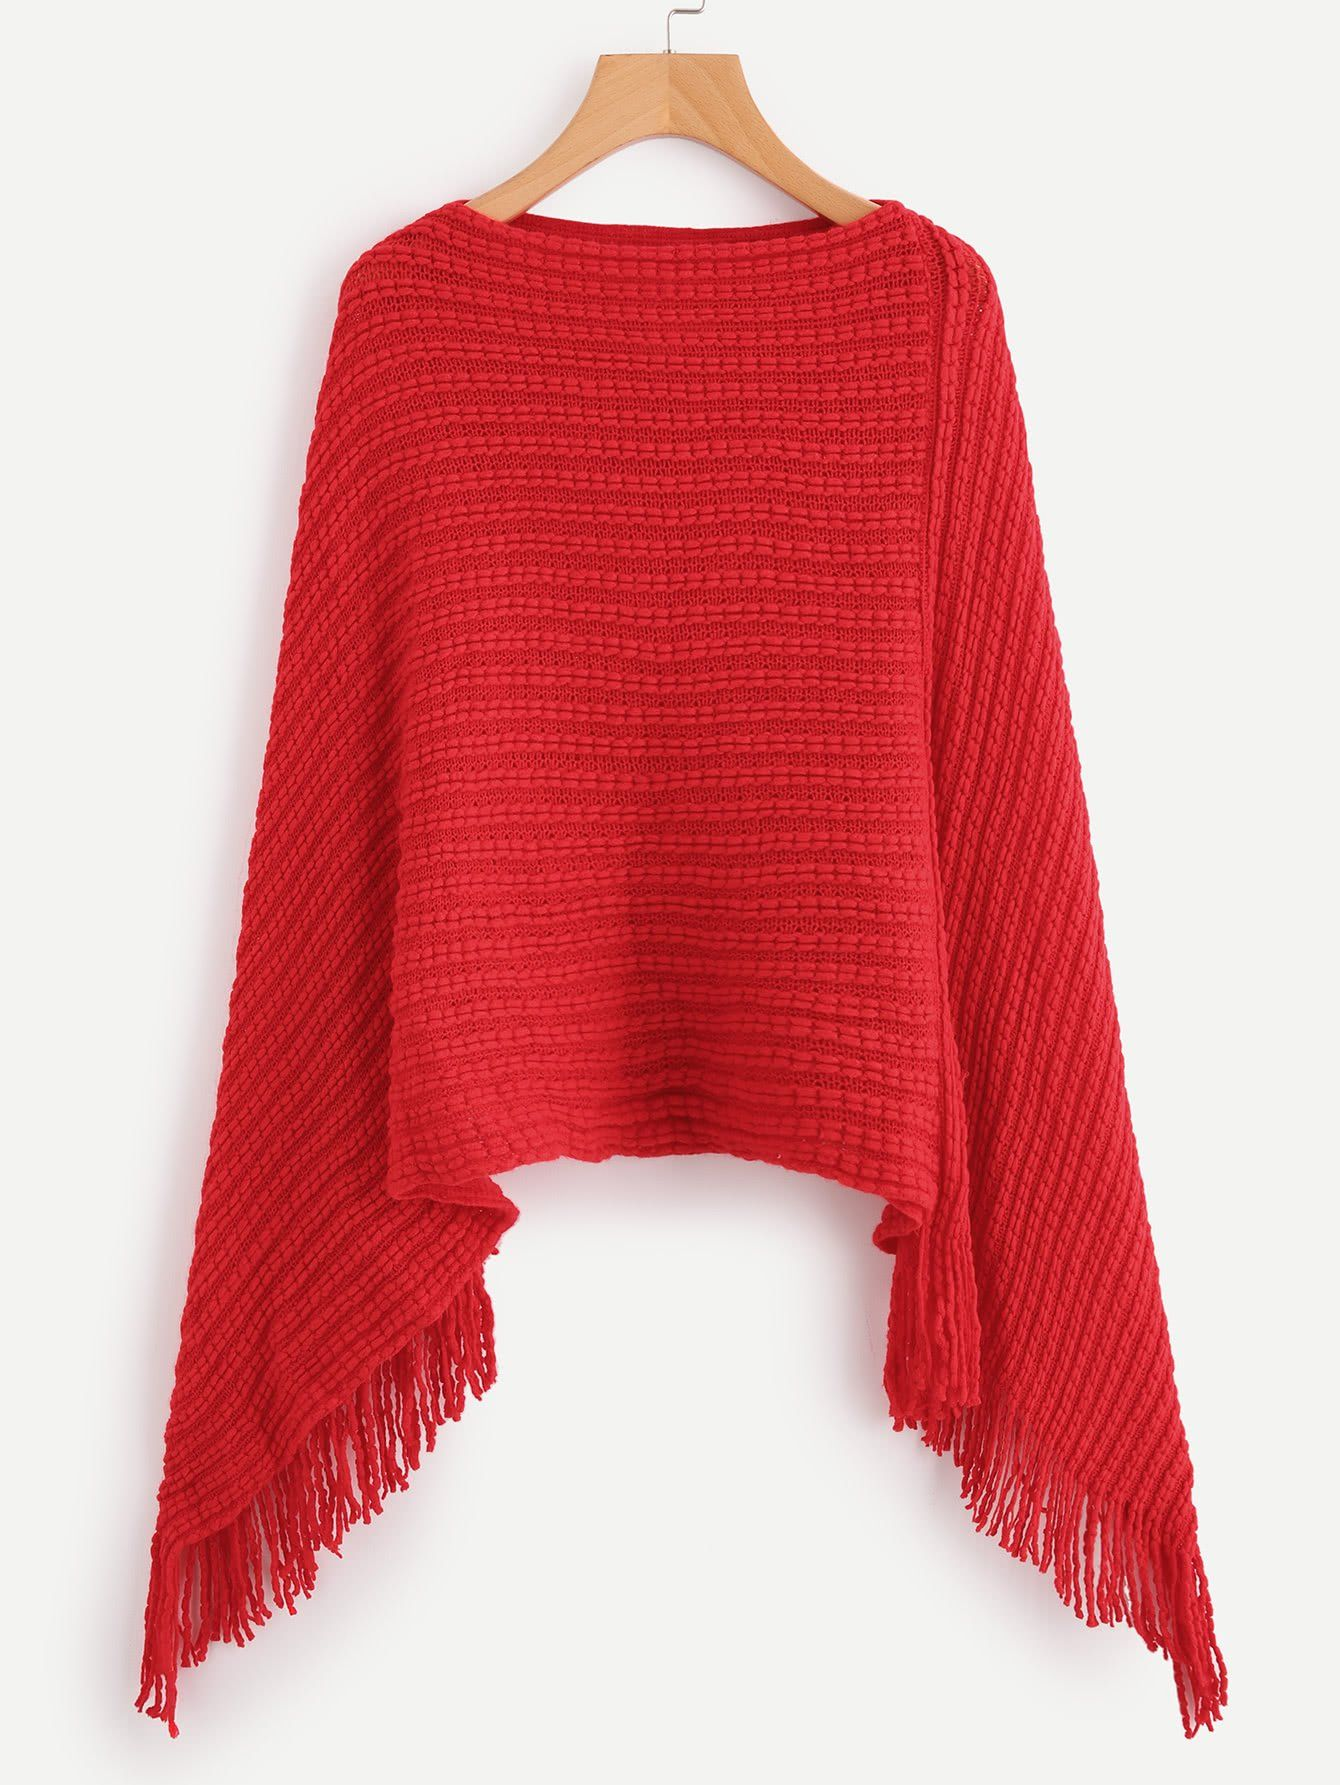 Red Fringe Hem Poncho Sweater | Poncho sweater, Ponchos and Color red